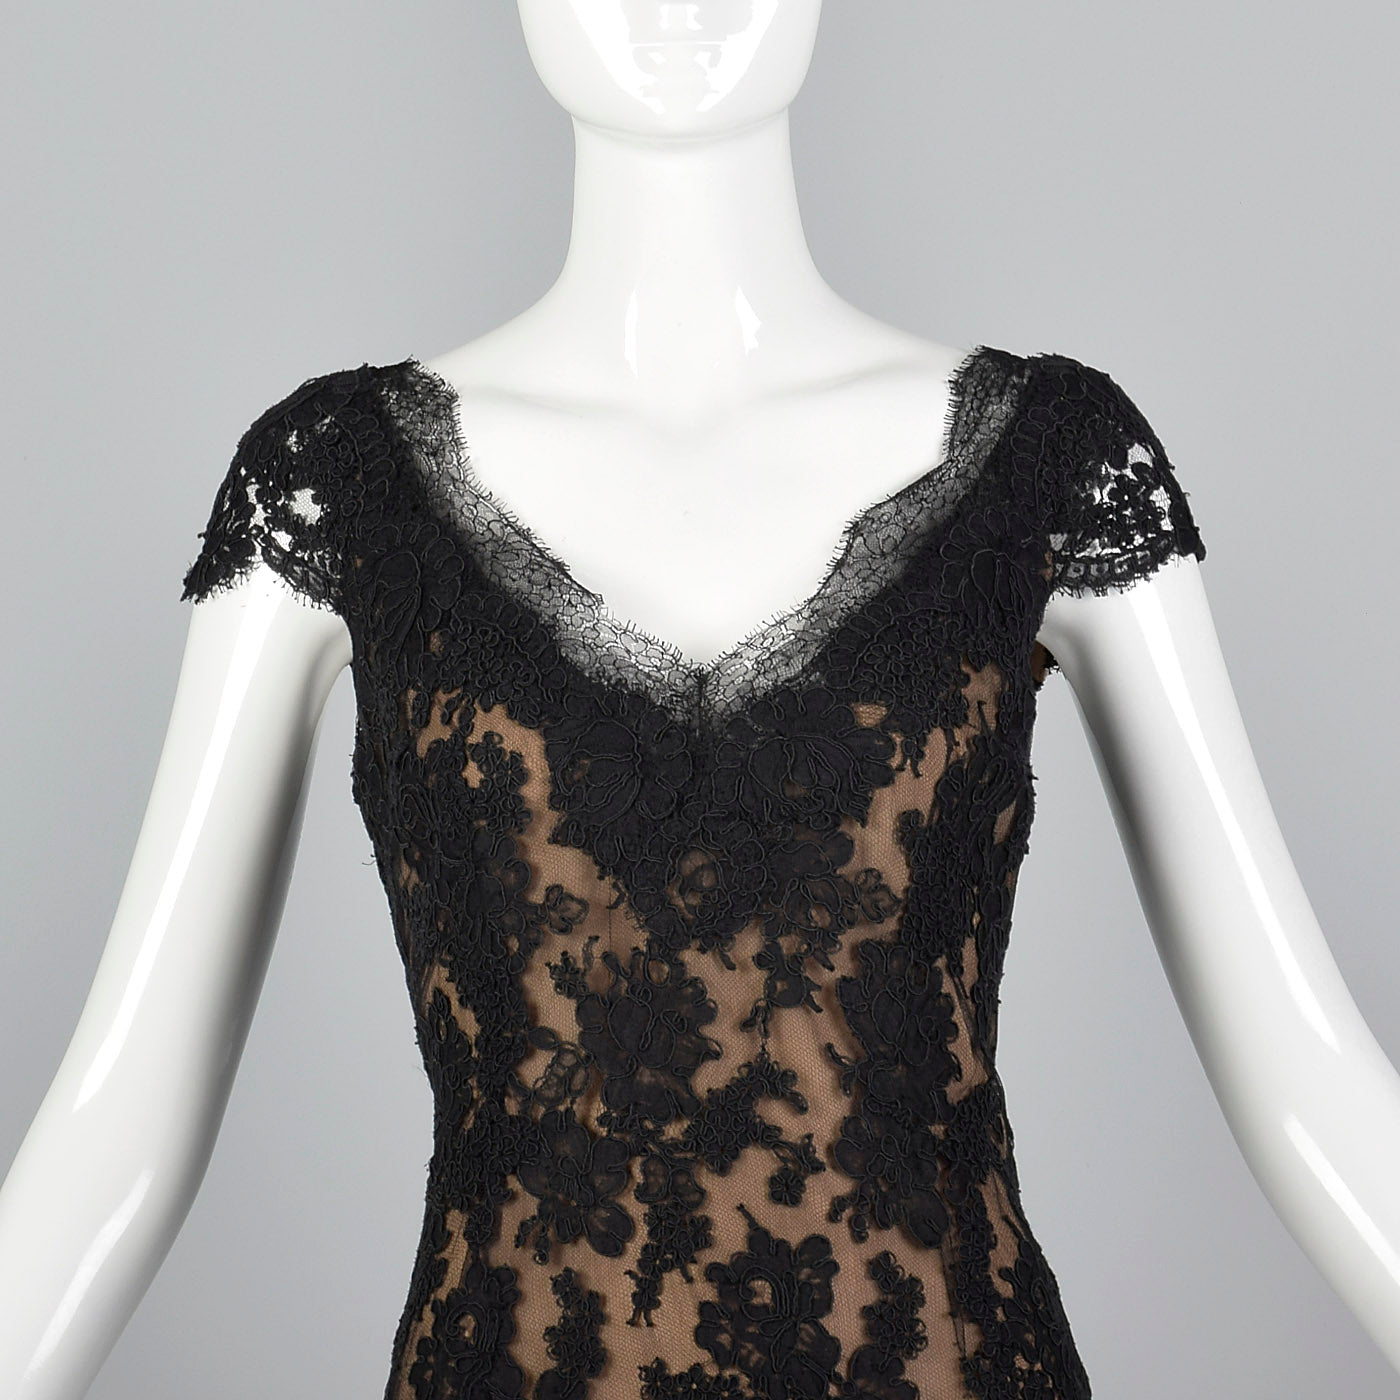 1990s Classic Oscar De La Renta Black Lace Dress